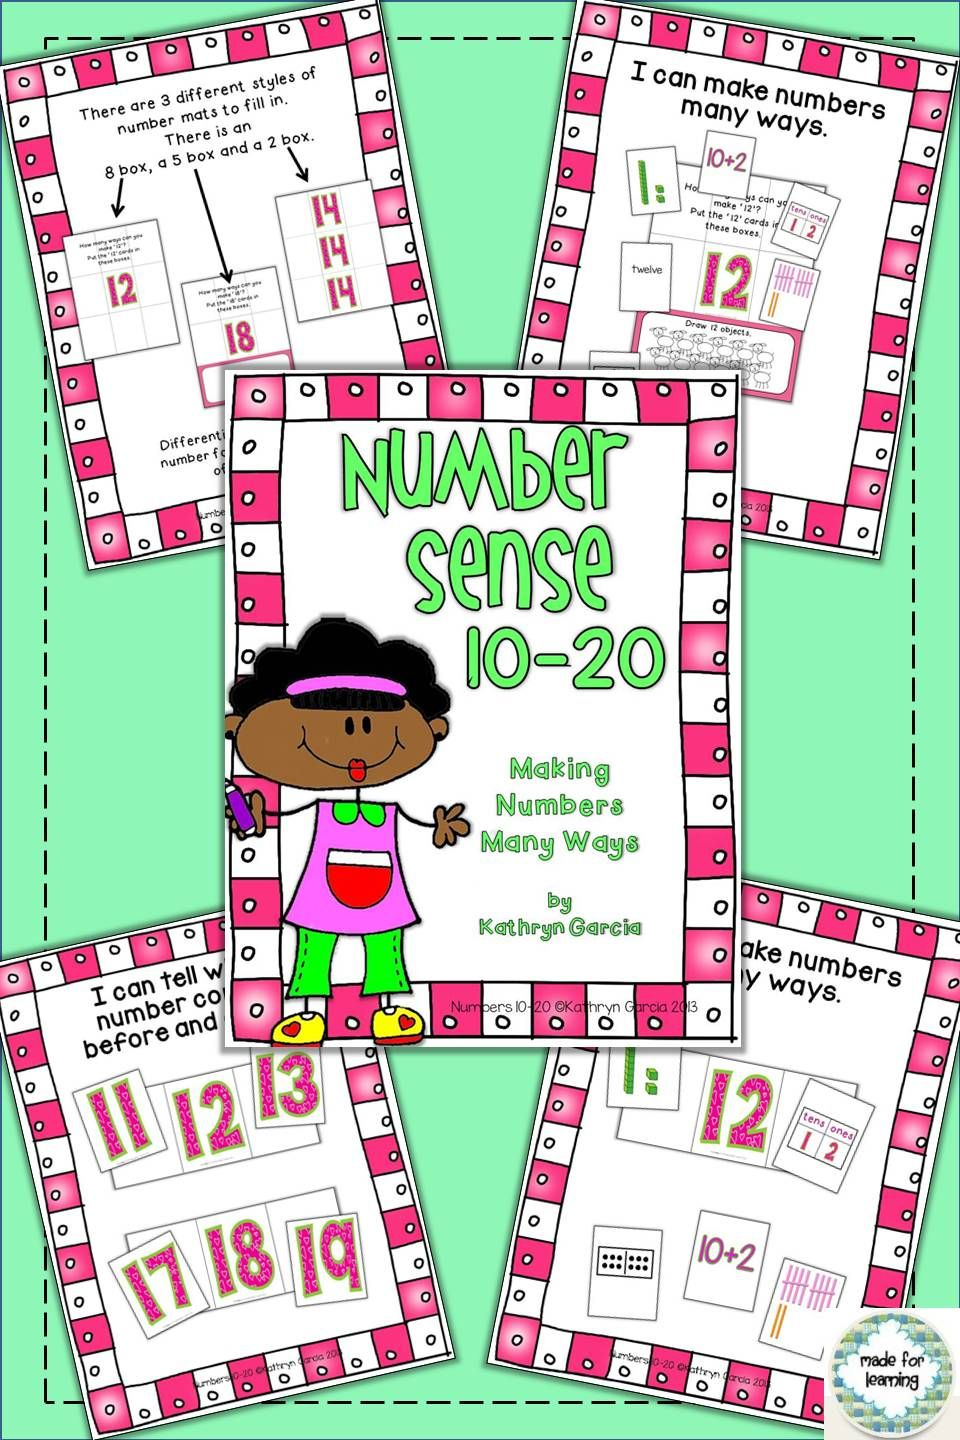 Number Sense 10-20: Making Numbers Many Ways | Activities, Maths and ...